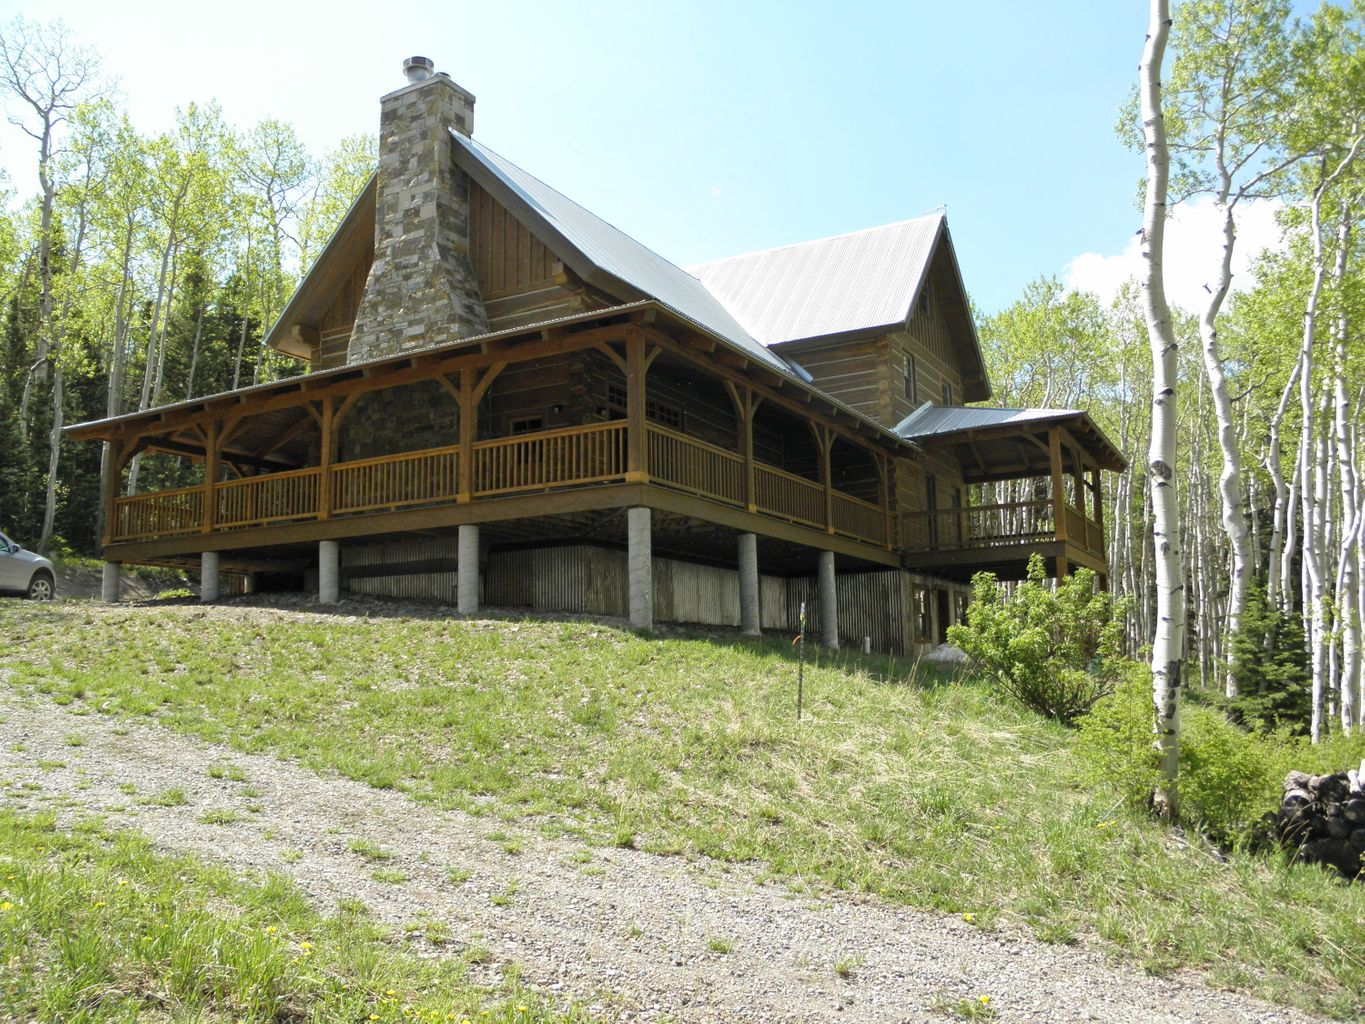 colorado sale vacation resort img for lodging log homes cabins butte rivers crested almont three gunnison